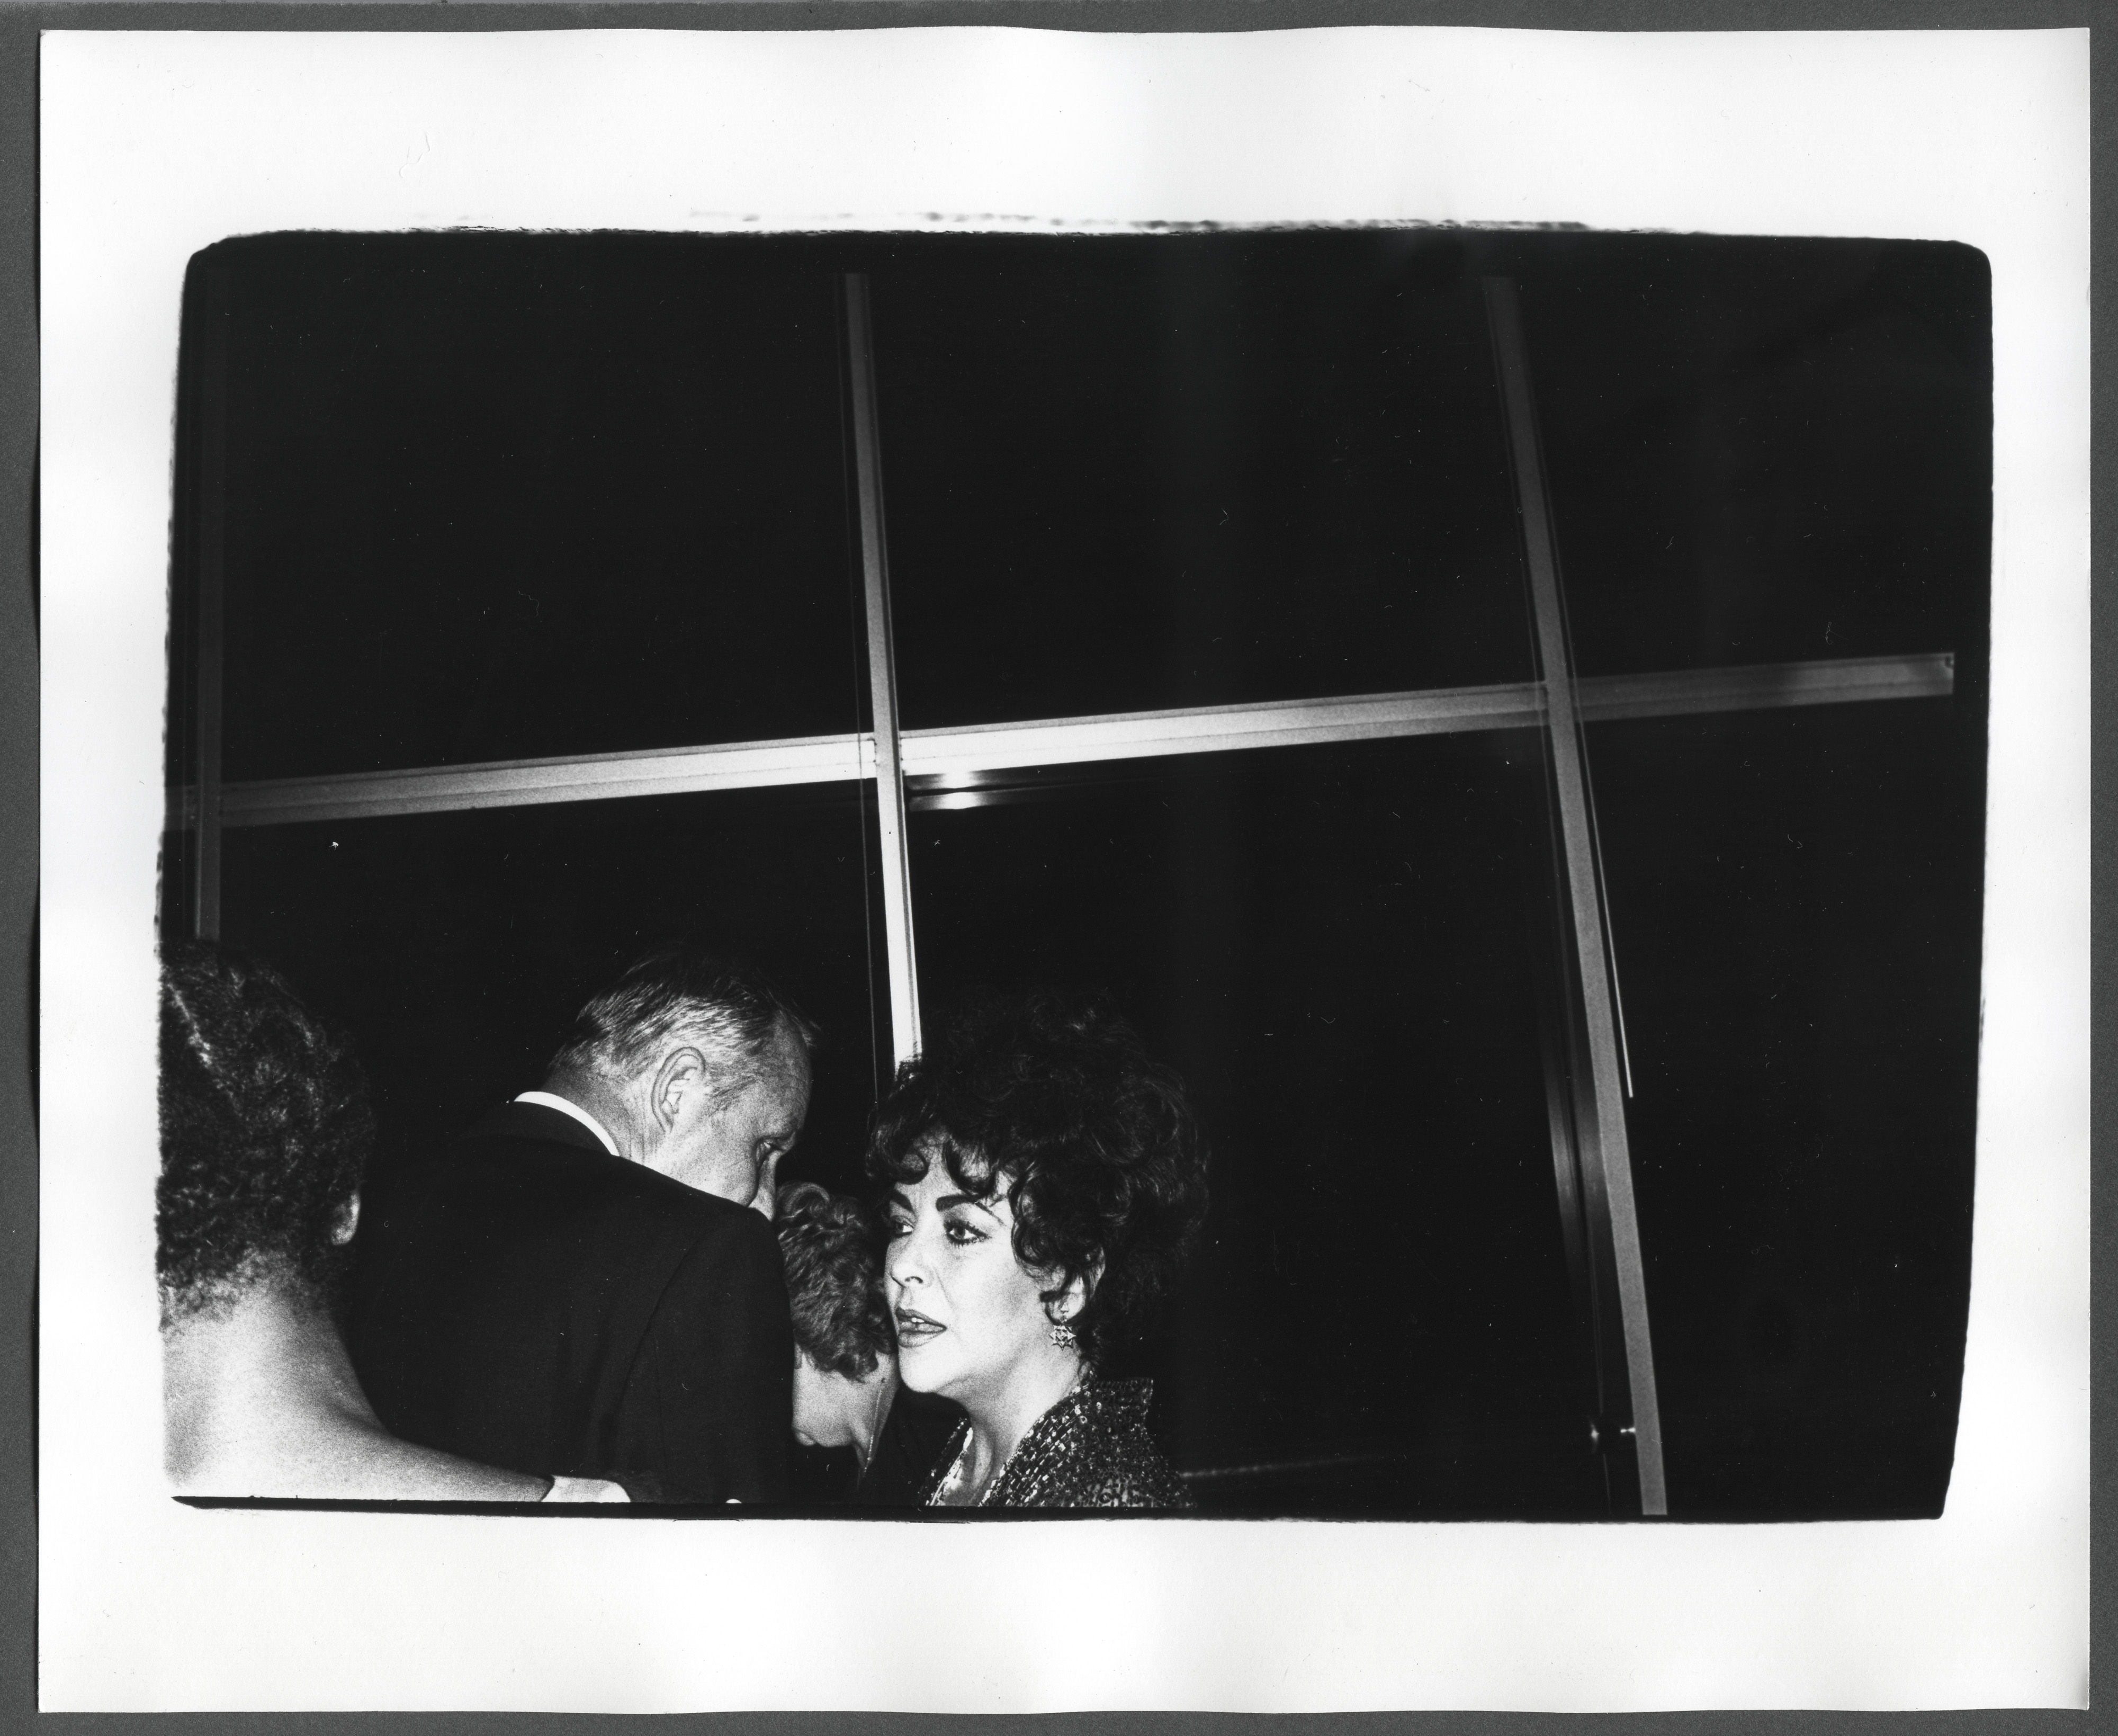 Andy Warhol, Elizabeth Taylor, 1979. Gift of the Andy Warhol Foundation for the Visual Arts, Inc.